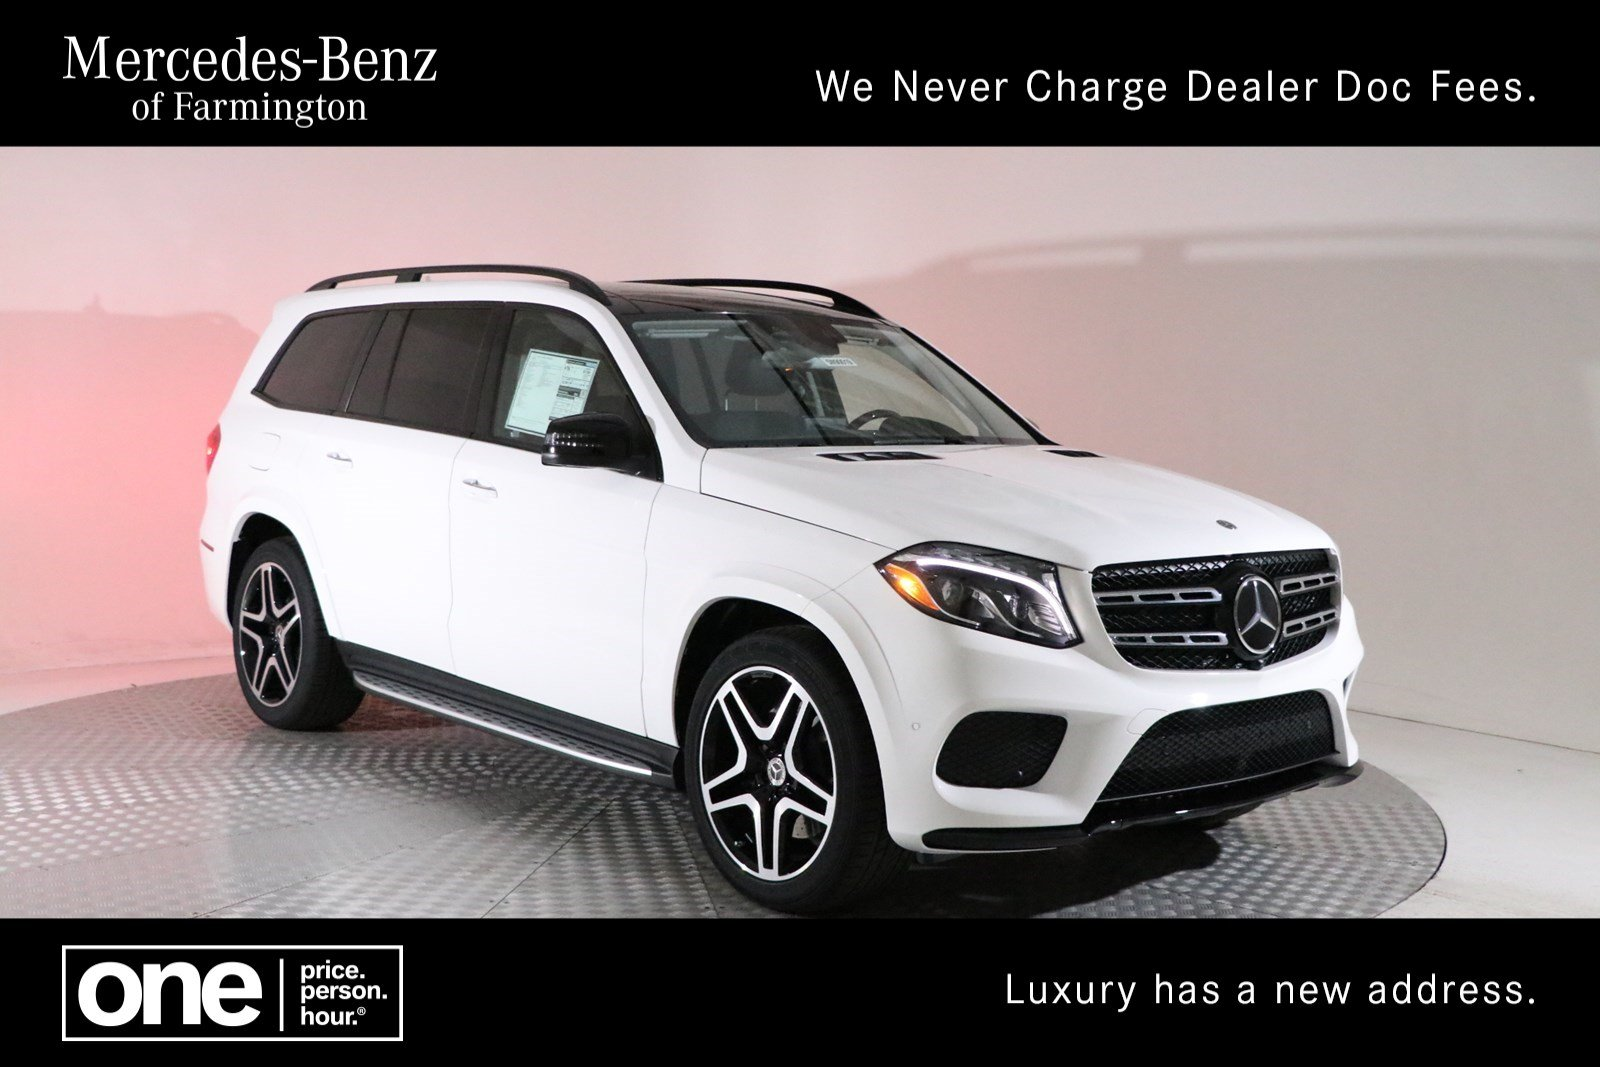 Mercedes Benz Suvs >> New 2019 Mercedes Benz Gls Gls 550 Suv In Farmington 5m90019